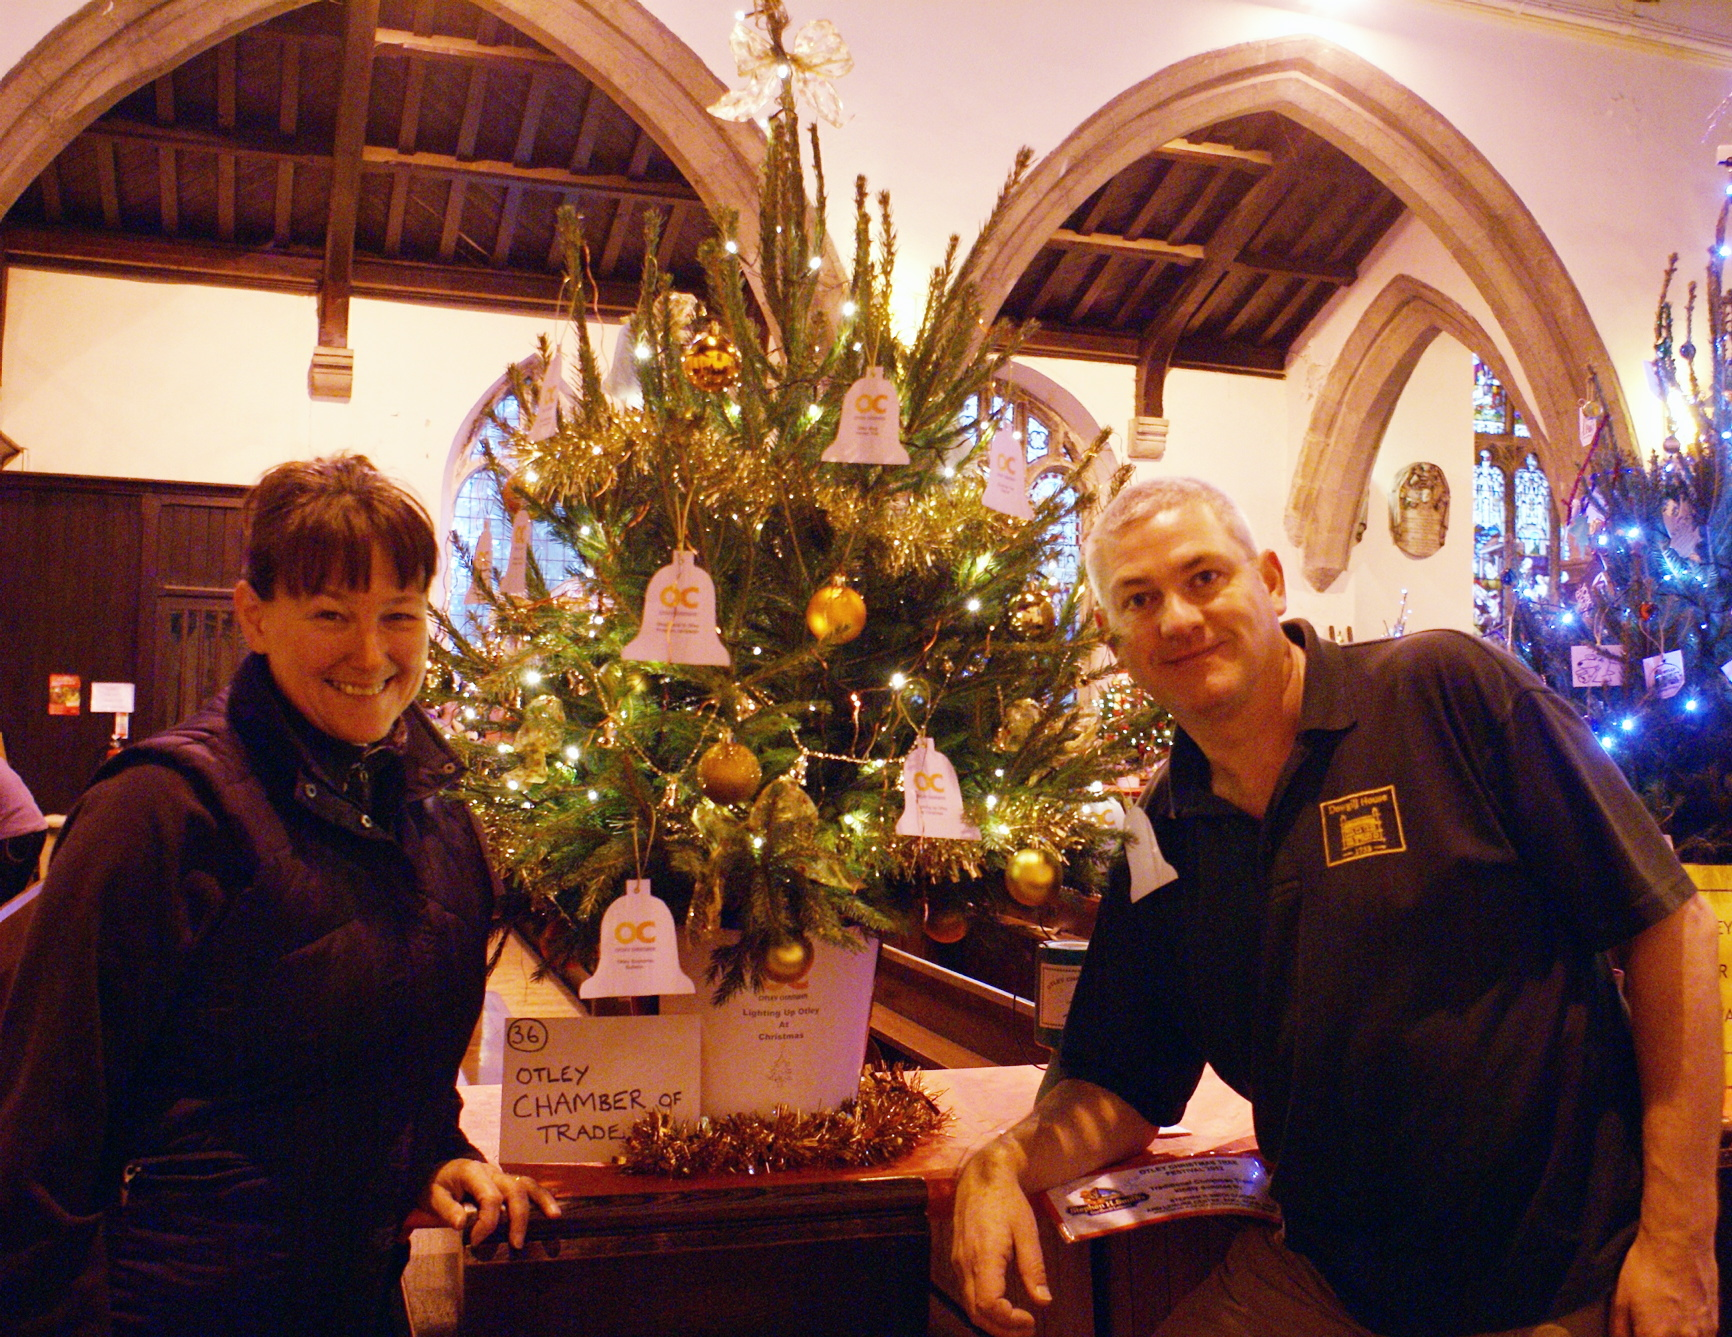 Helen and Tim Wilkinson are hoping lots of visitors will flock to the third Otley Christmas Tree Festival.